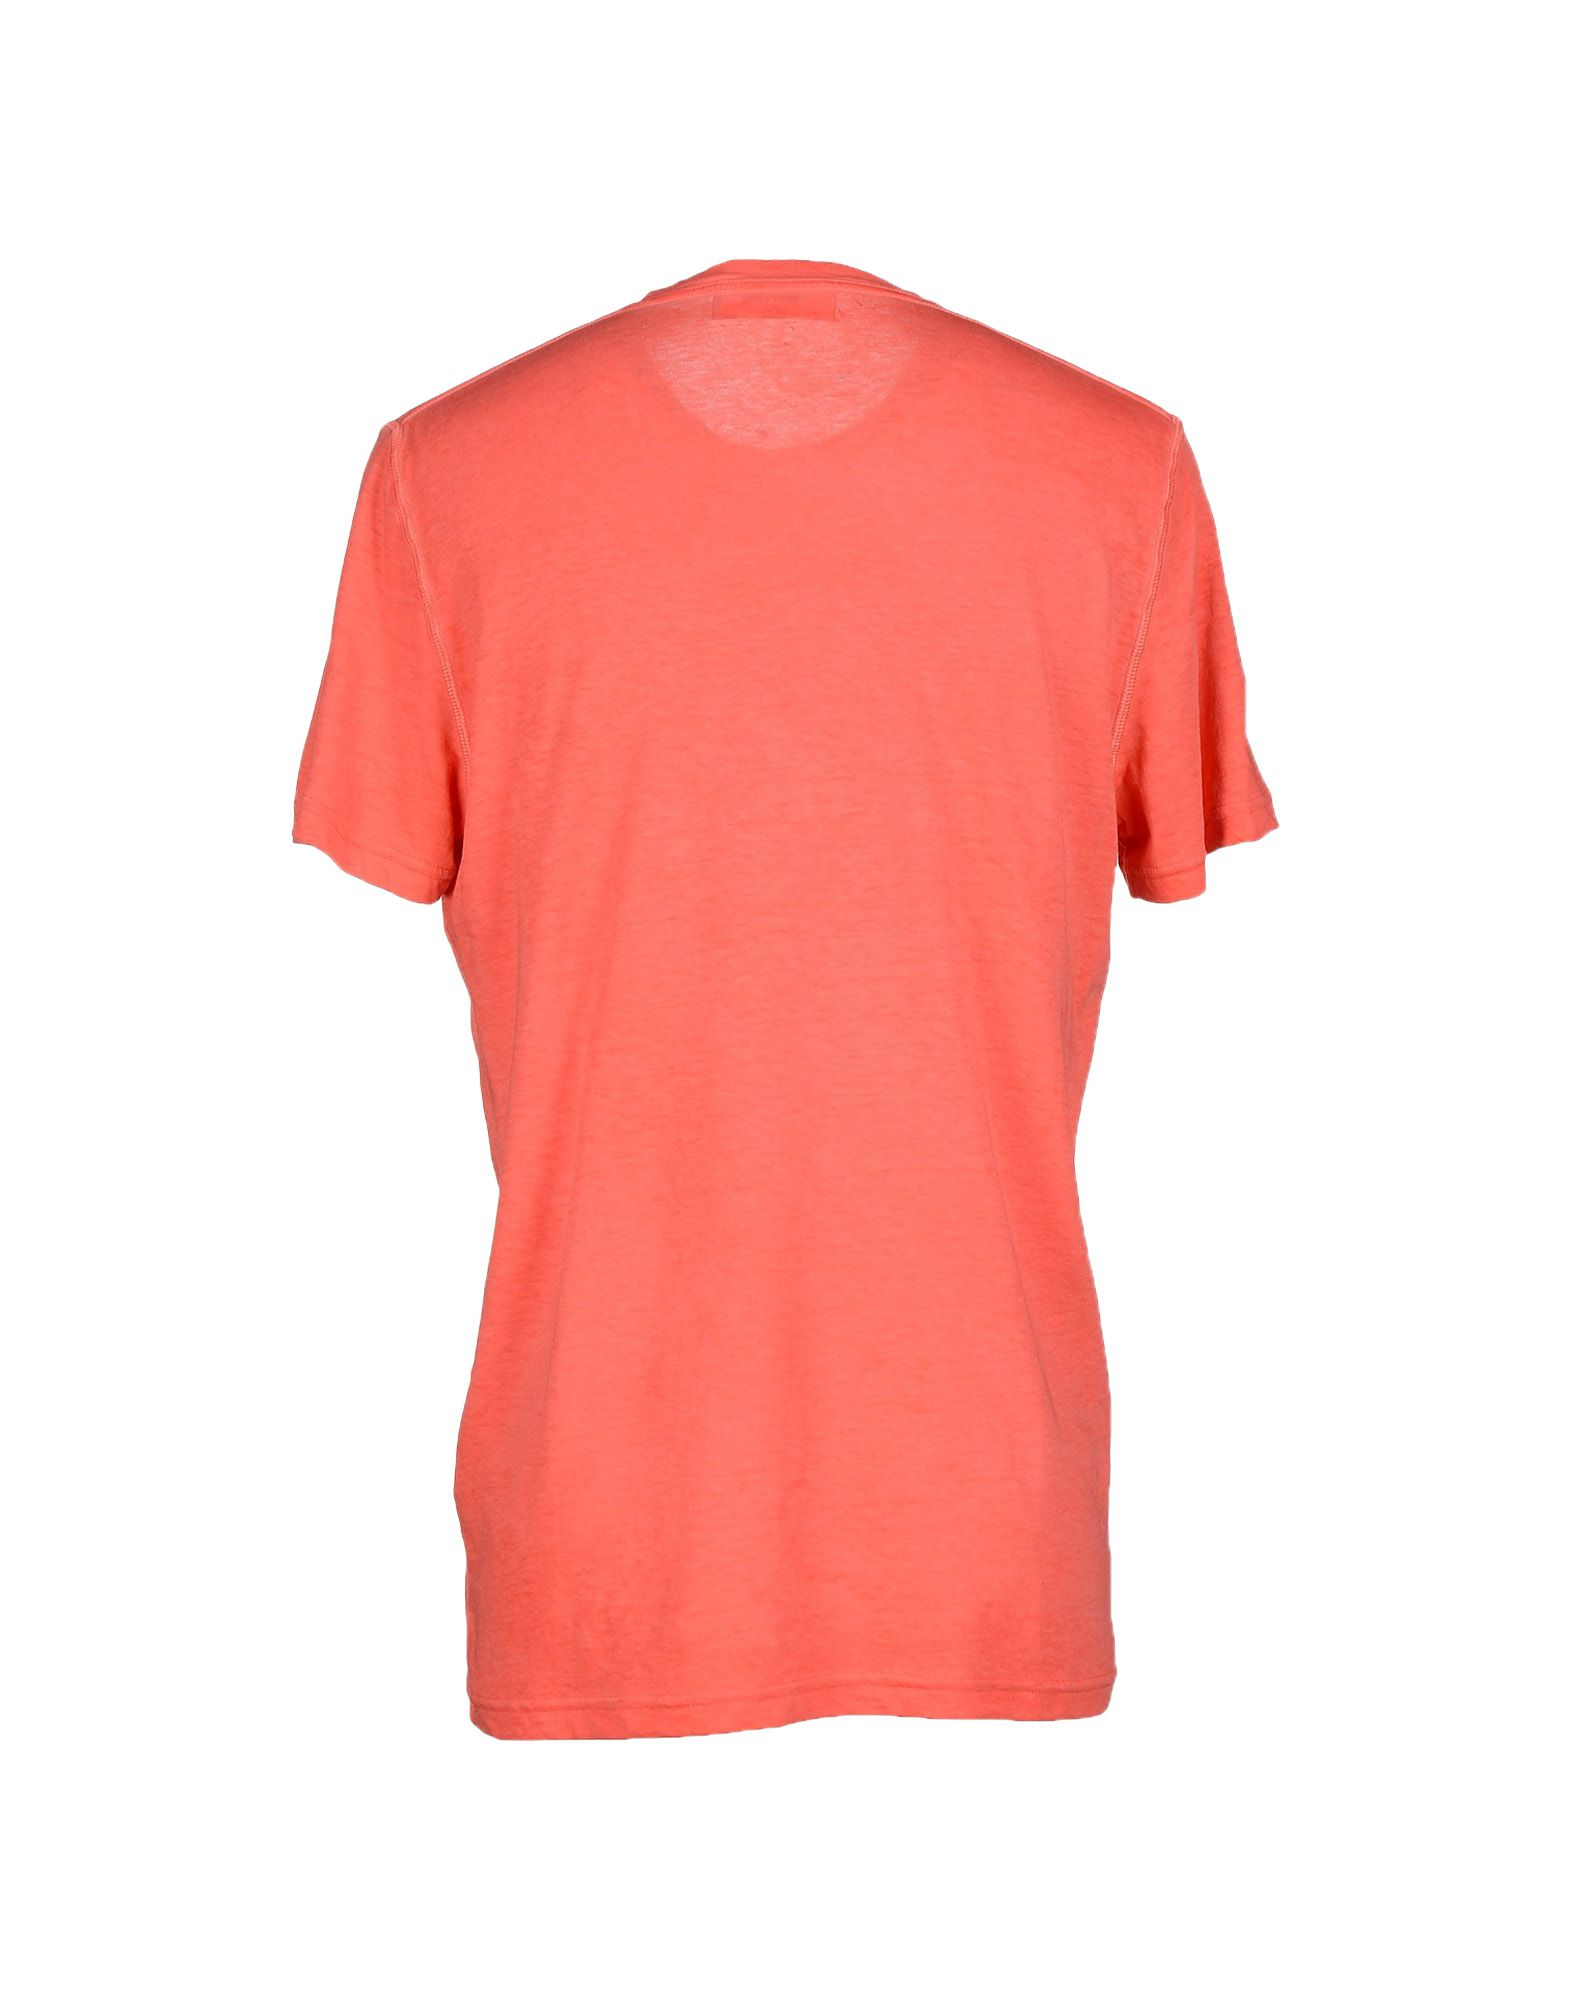 Dsquared t shirt in pink for men coral lyst for Coral shirts for guys